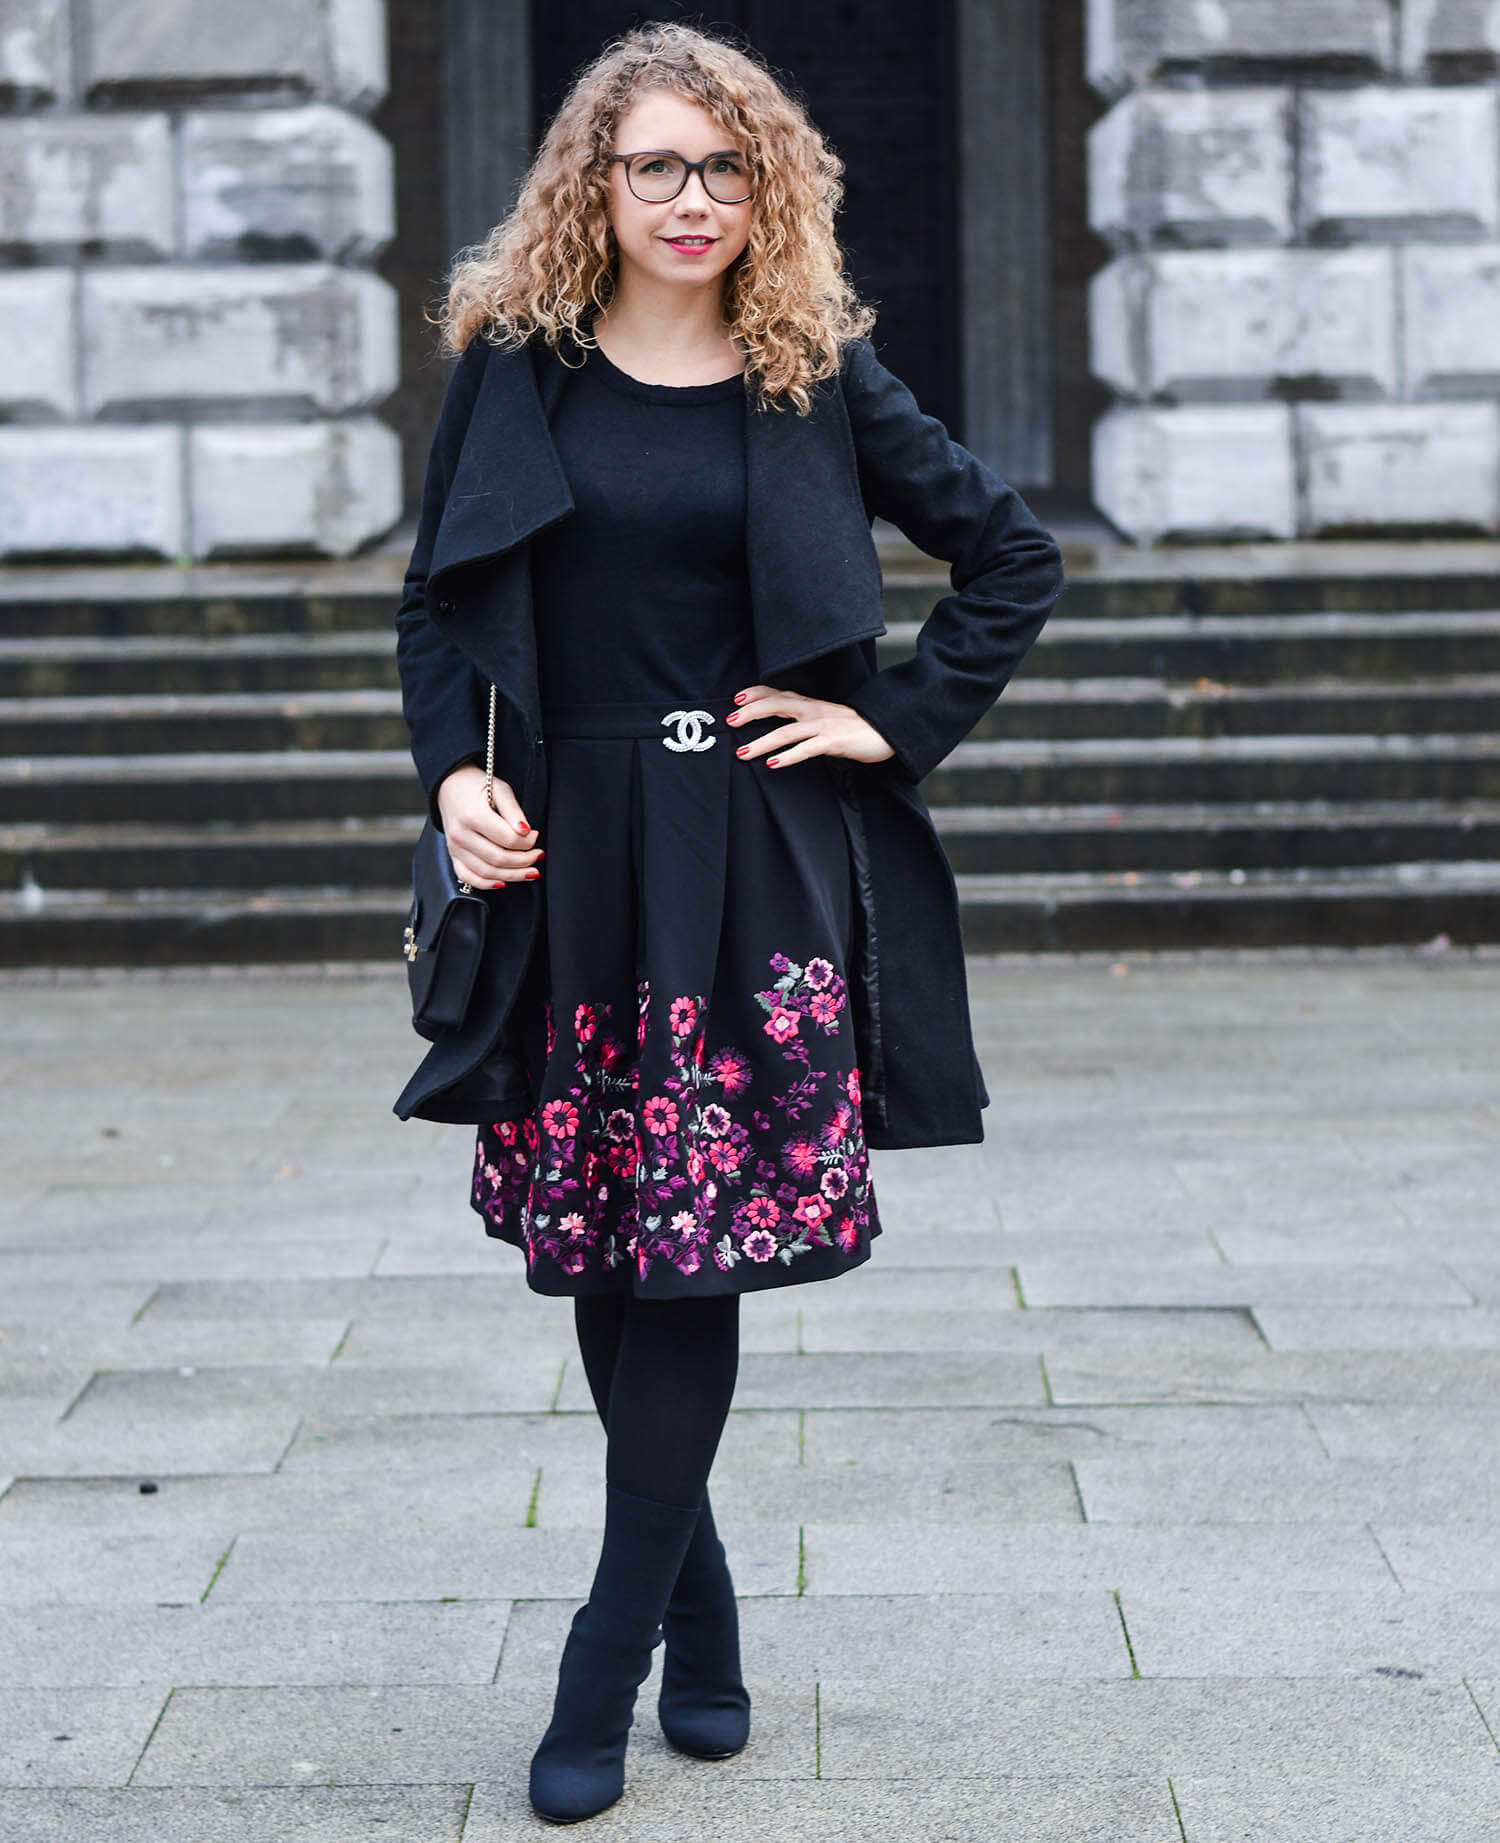 Kationette-fashionblogger-nrw-Merry-Christmas-Outfit-New-Hallhuber-Skirt-with-Flower-Embroidery